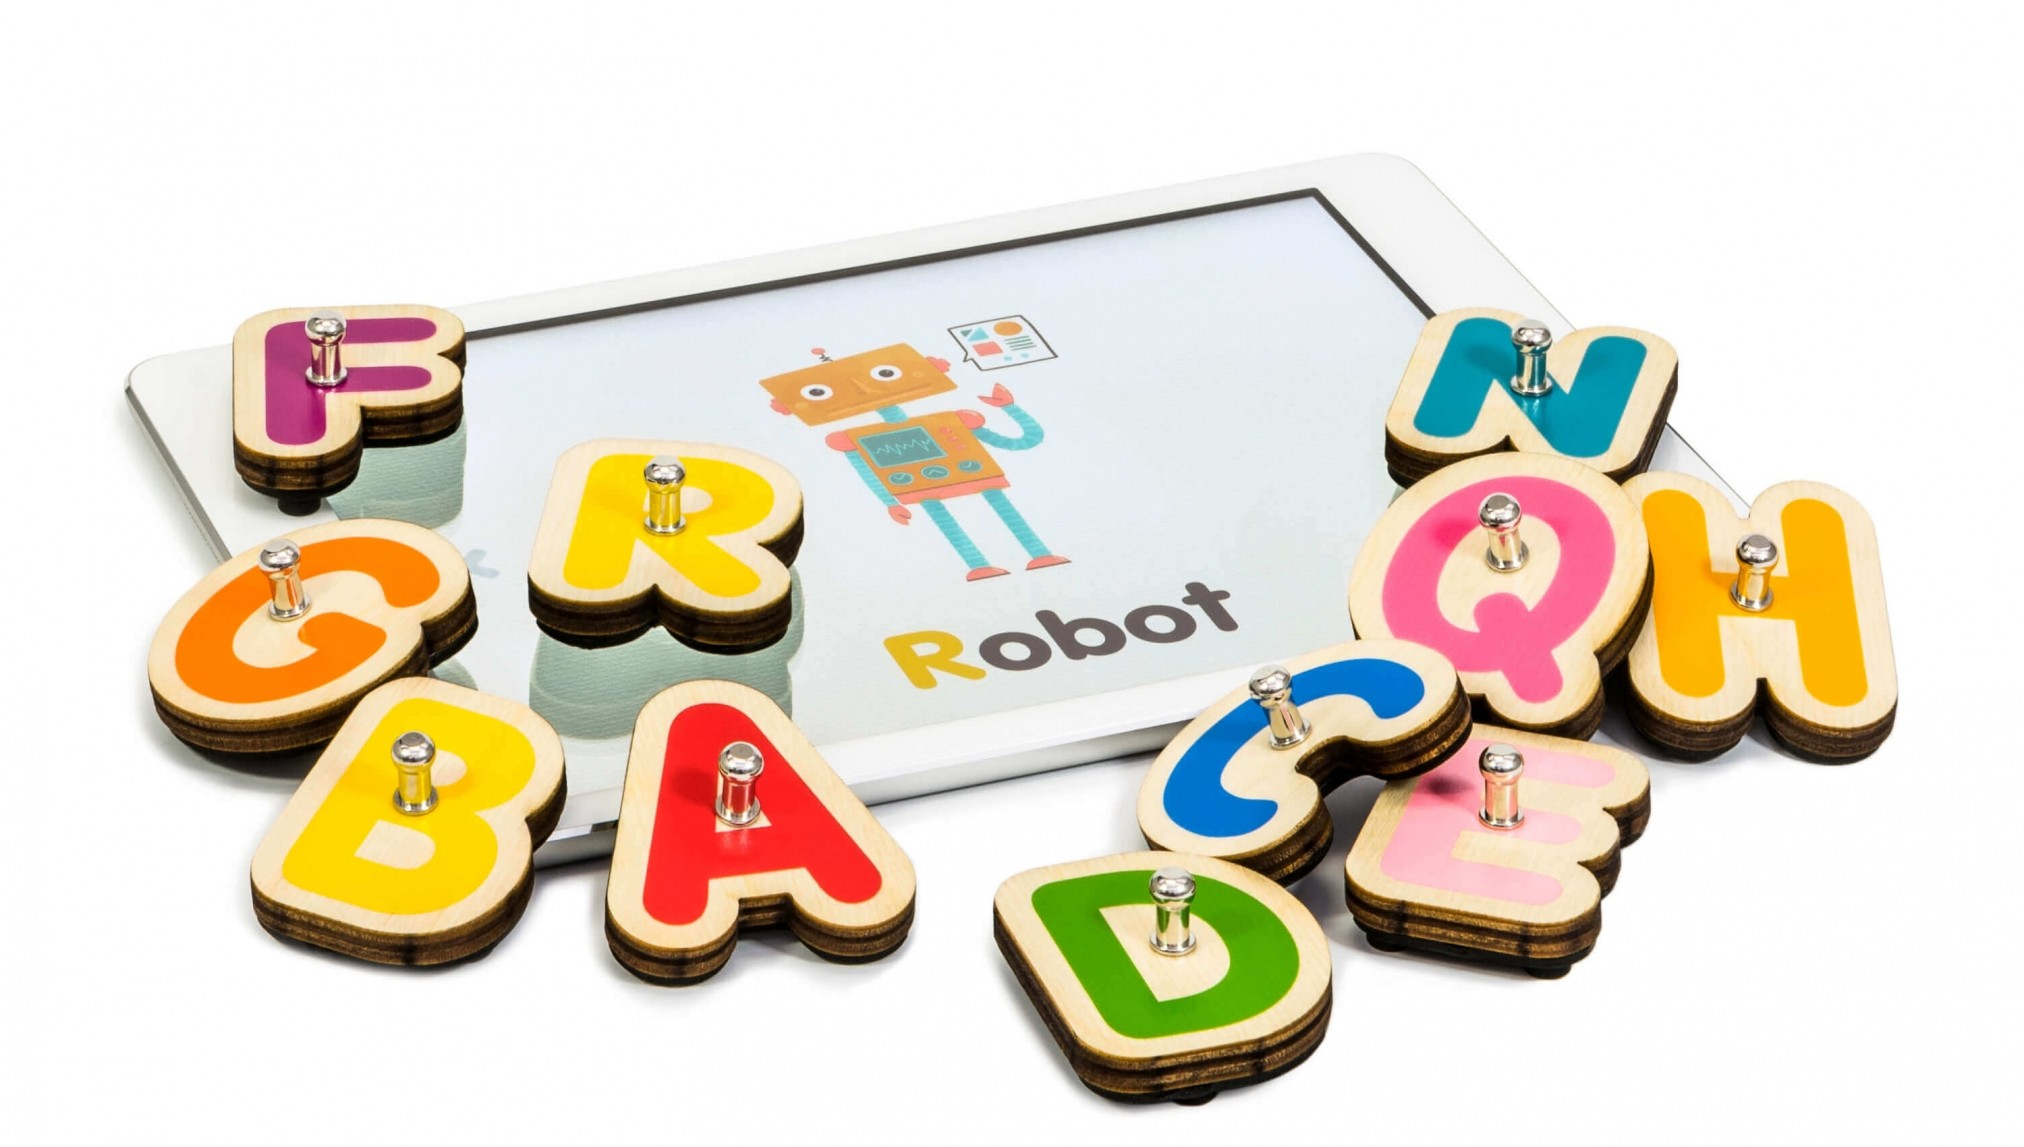 Smart Letters Educative Toy from Marbotic